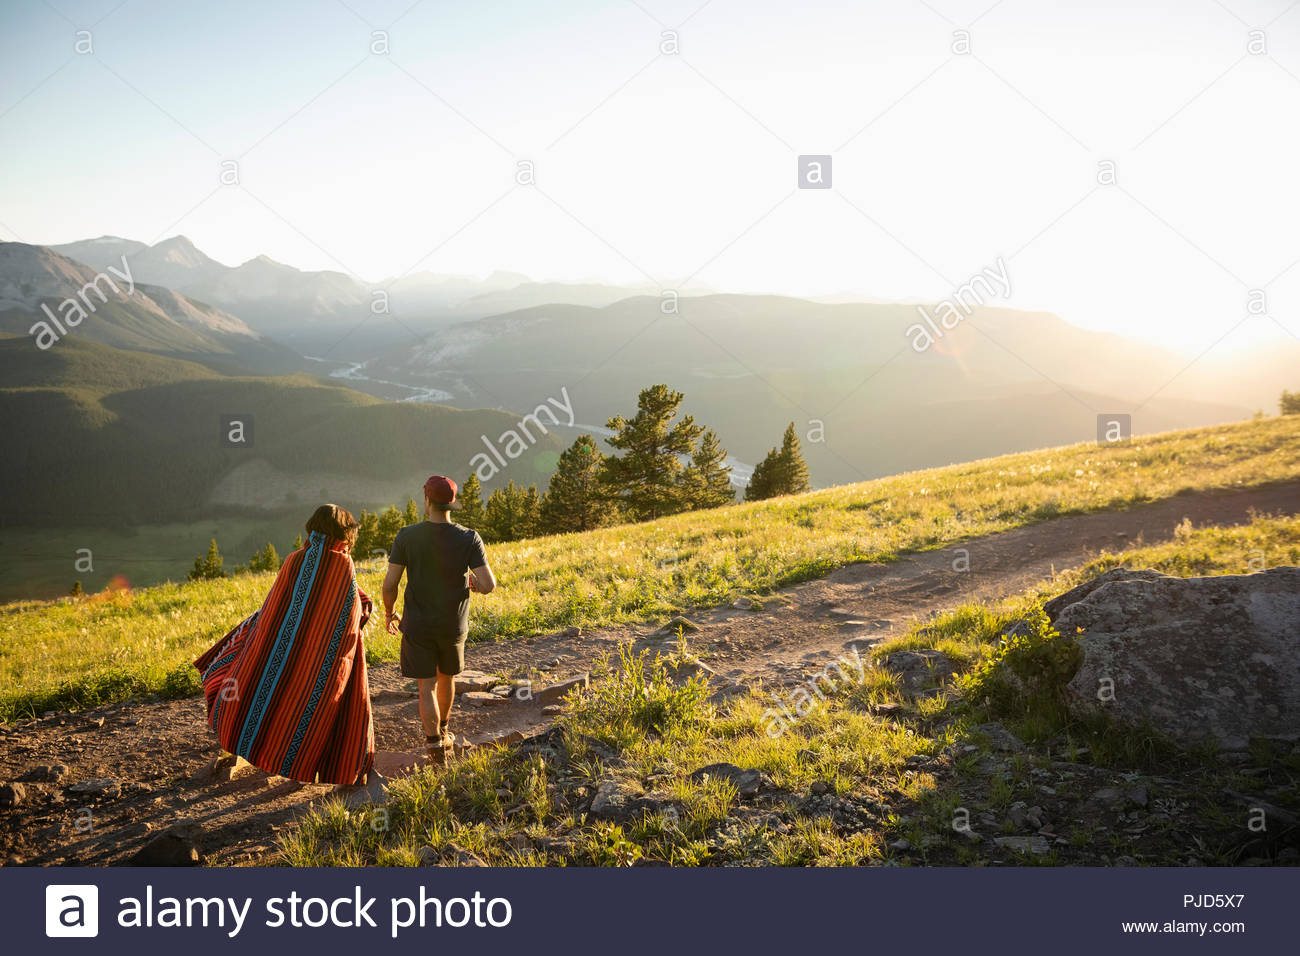 Couple wrapped in blanket walking on sunny mountain hilltop, Alberta, Canada - Stock Image